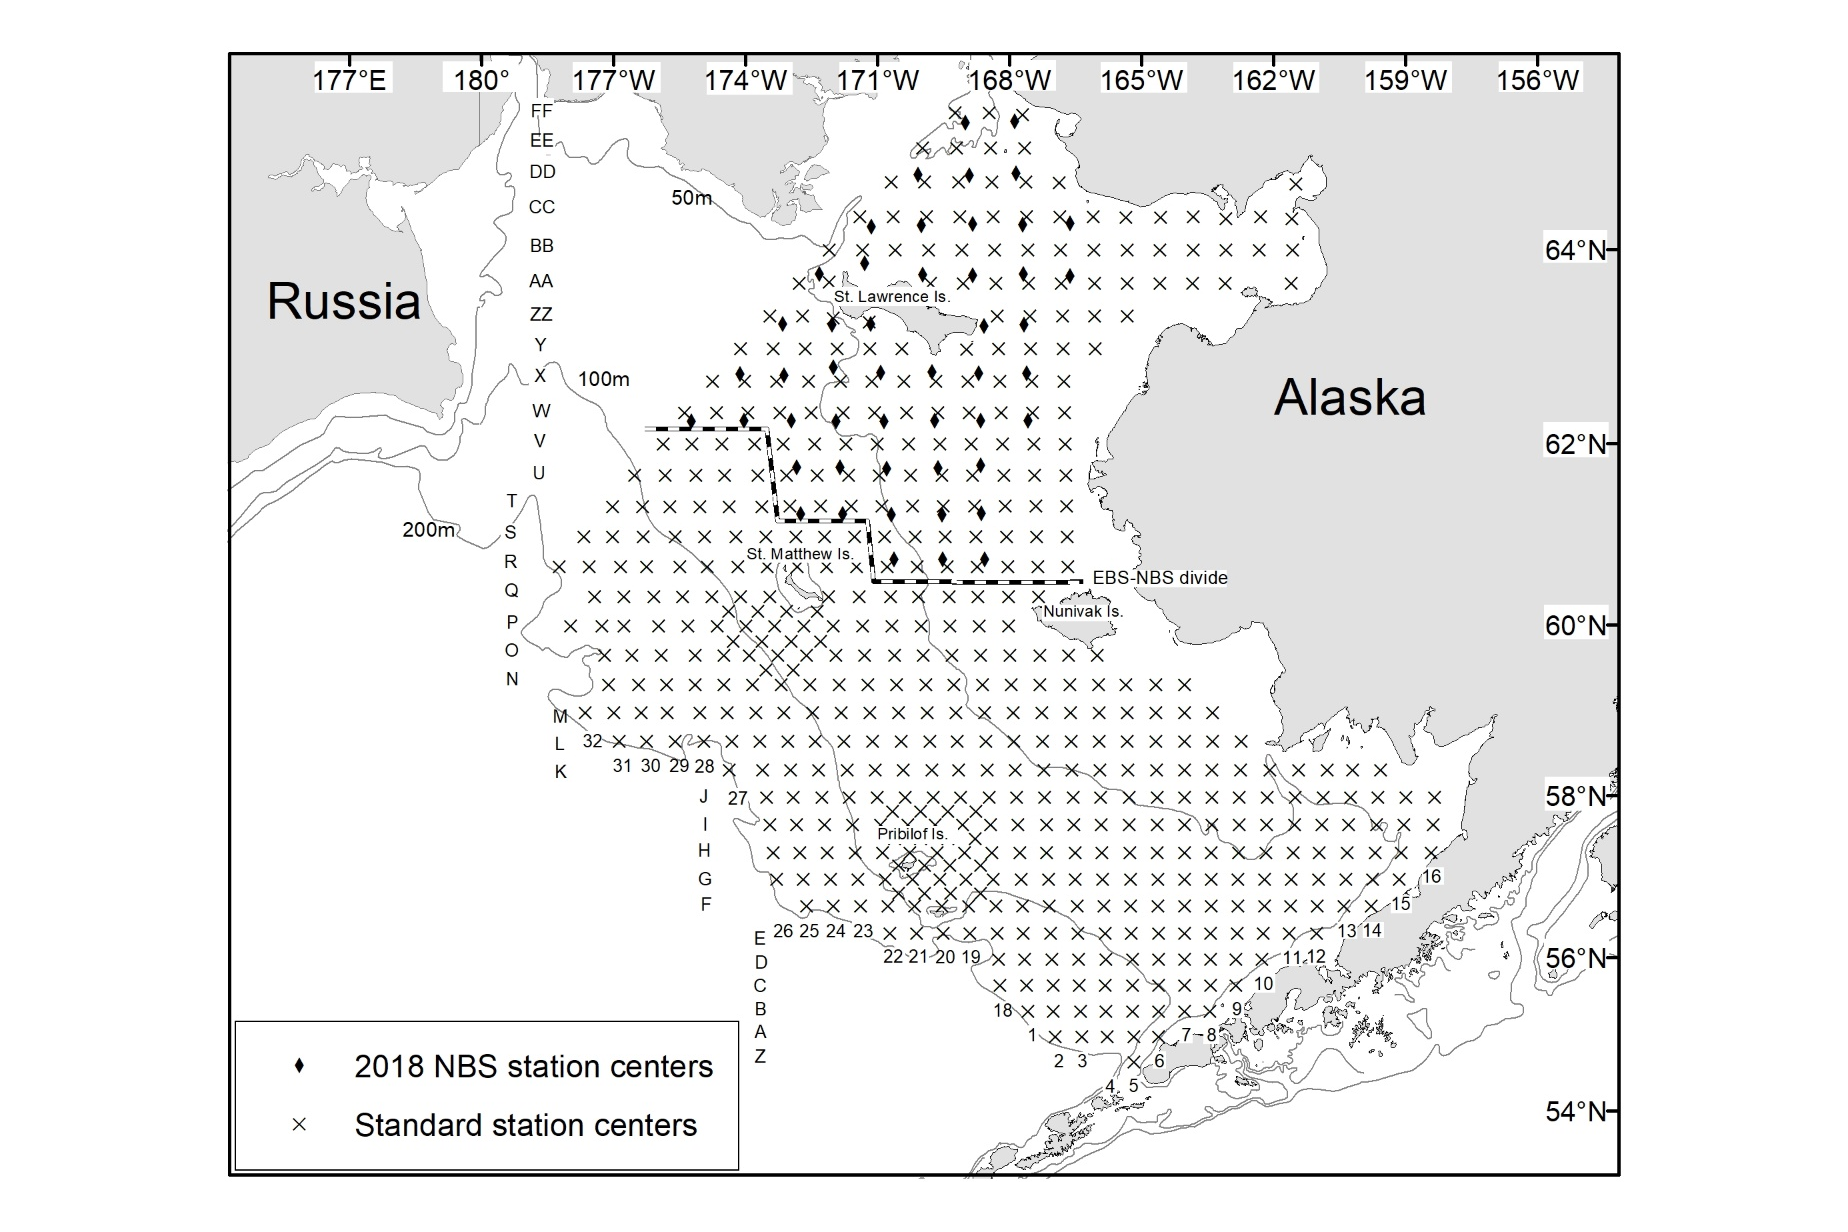 Map showing standard northern and eastern Bering Sea NOAA Fisheries survey areas and sampling stations.